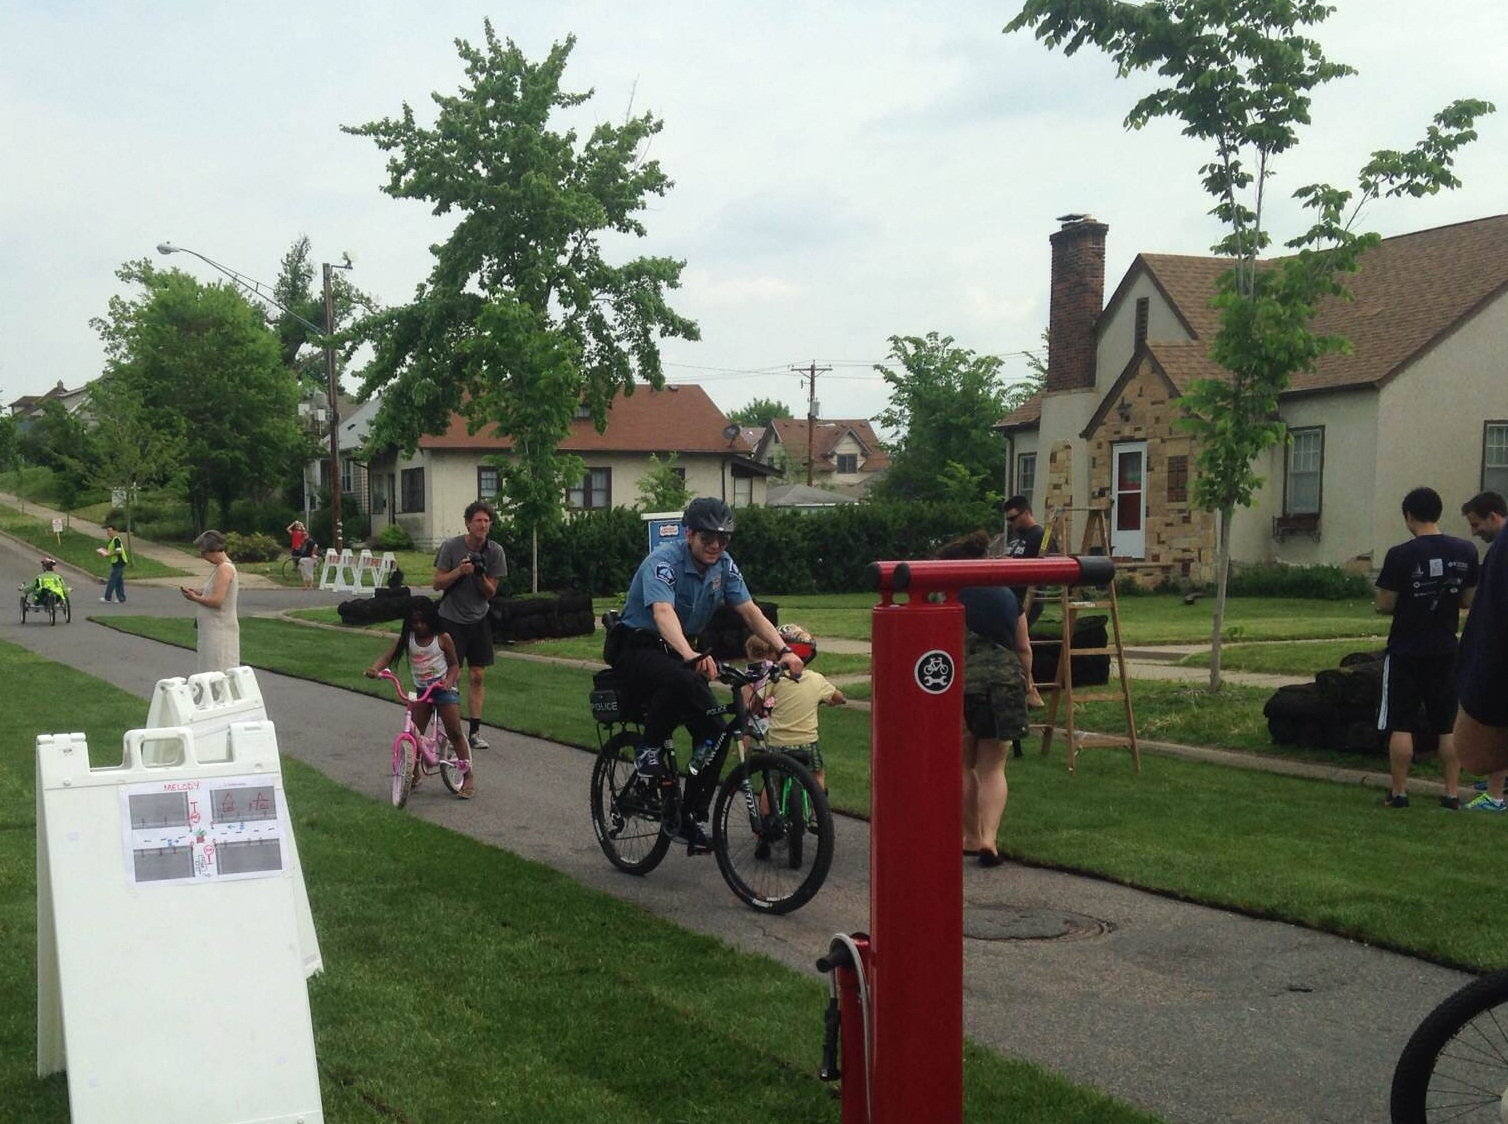 Sod was lain to show residents what a new bike greenway in North Minneapolis could look like.